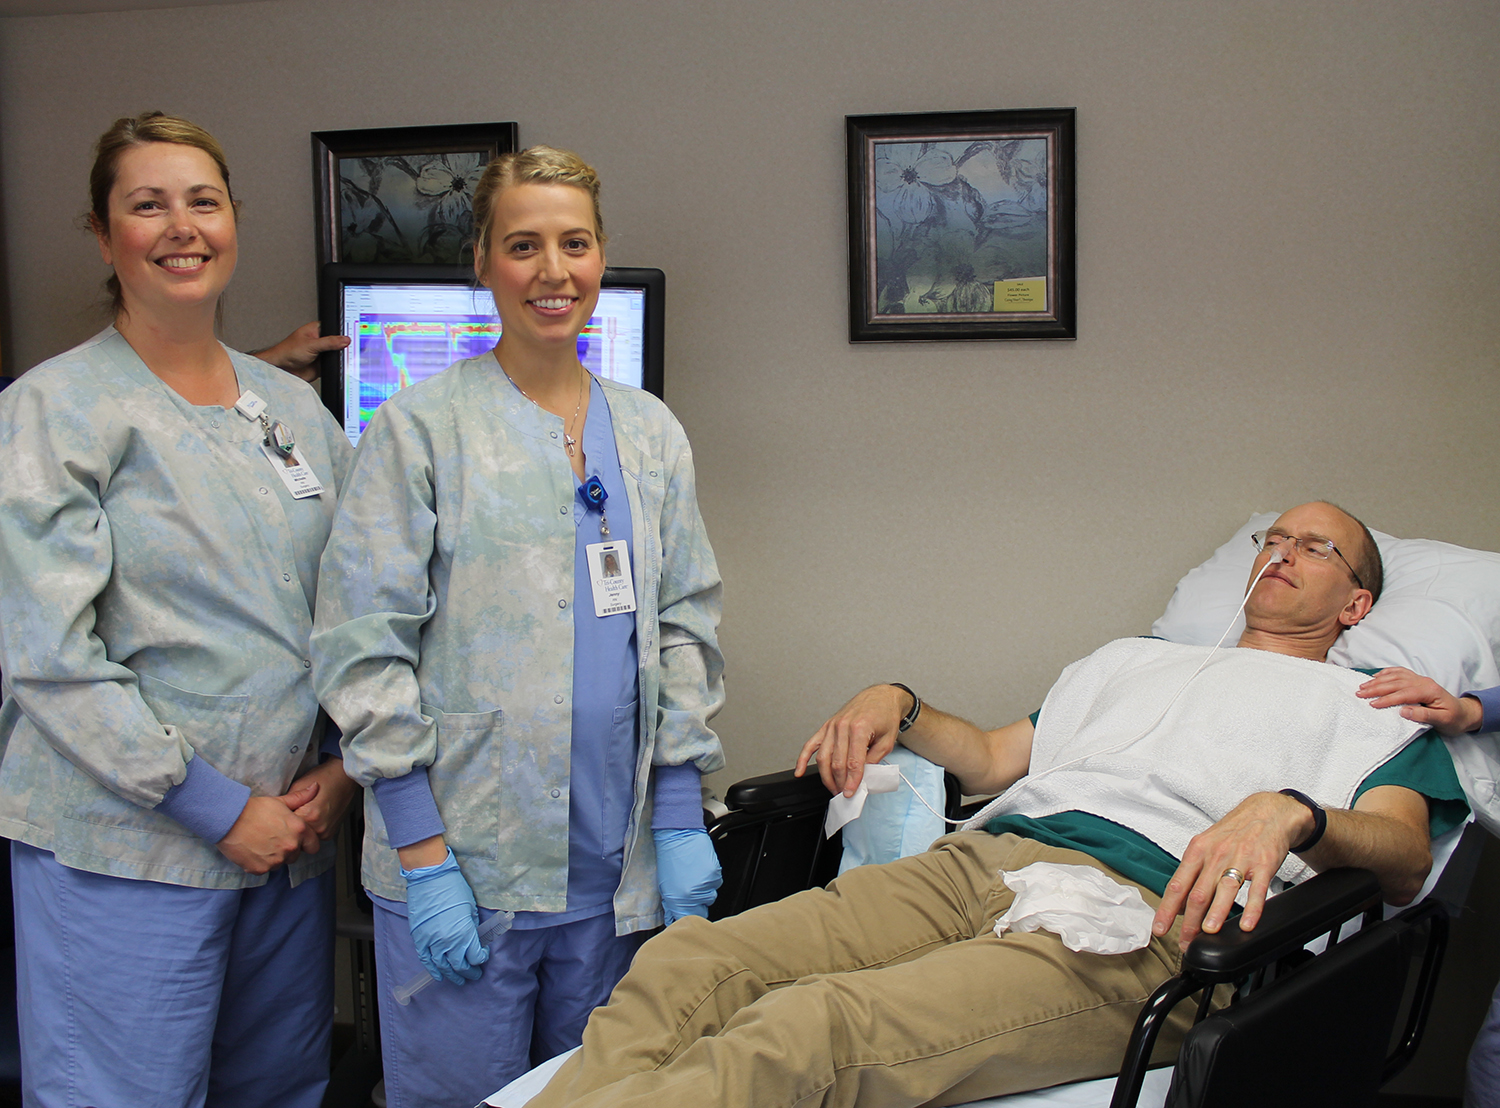 Nurses conduct Esophageal Motility Test on Dr. Kloss.